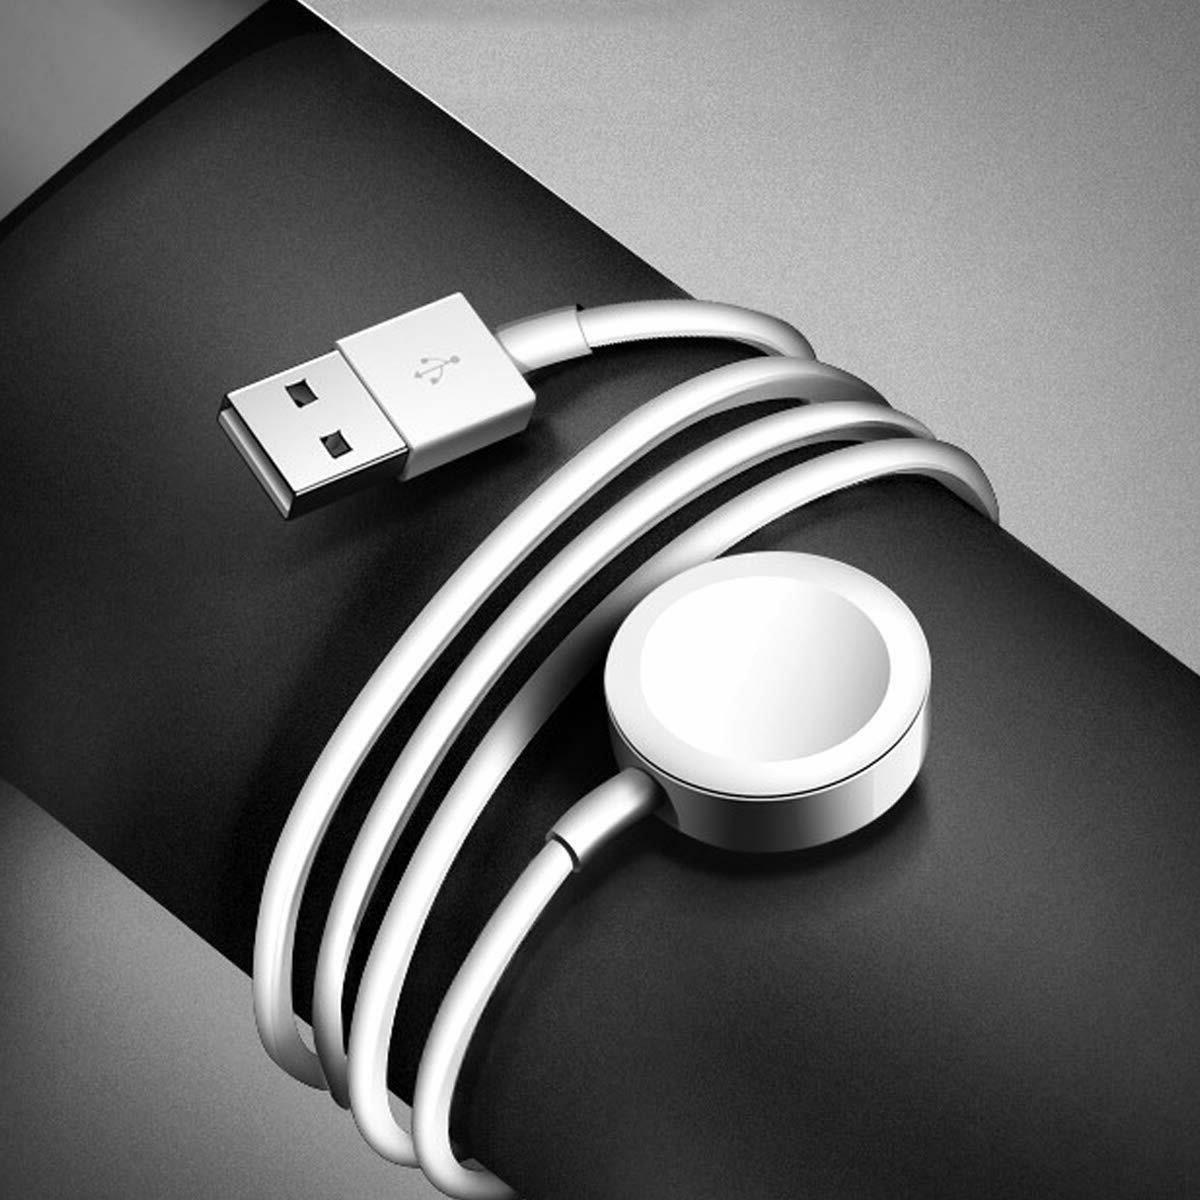 For Watch iWatch Series 2 3 Dock USB Cable